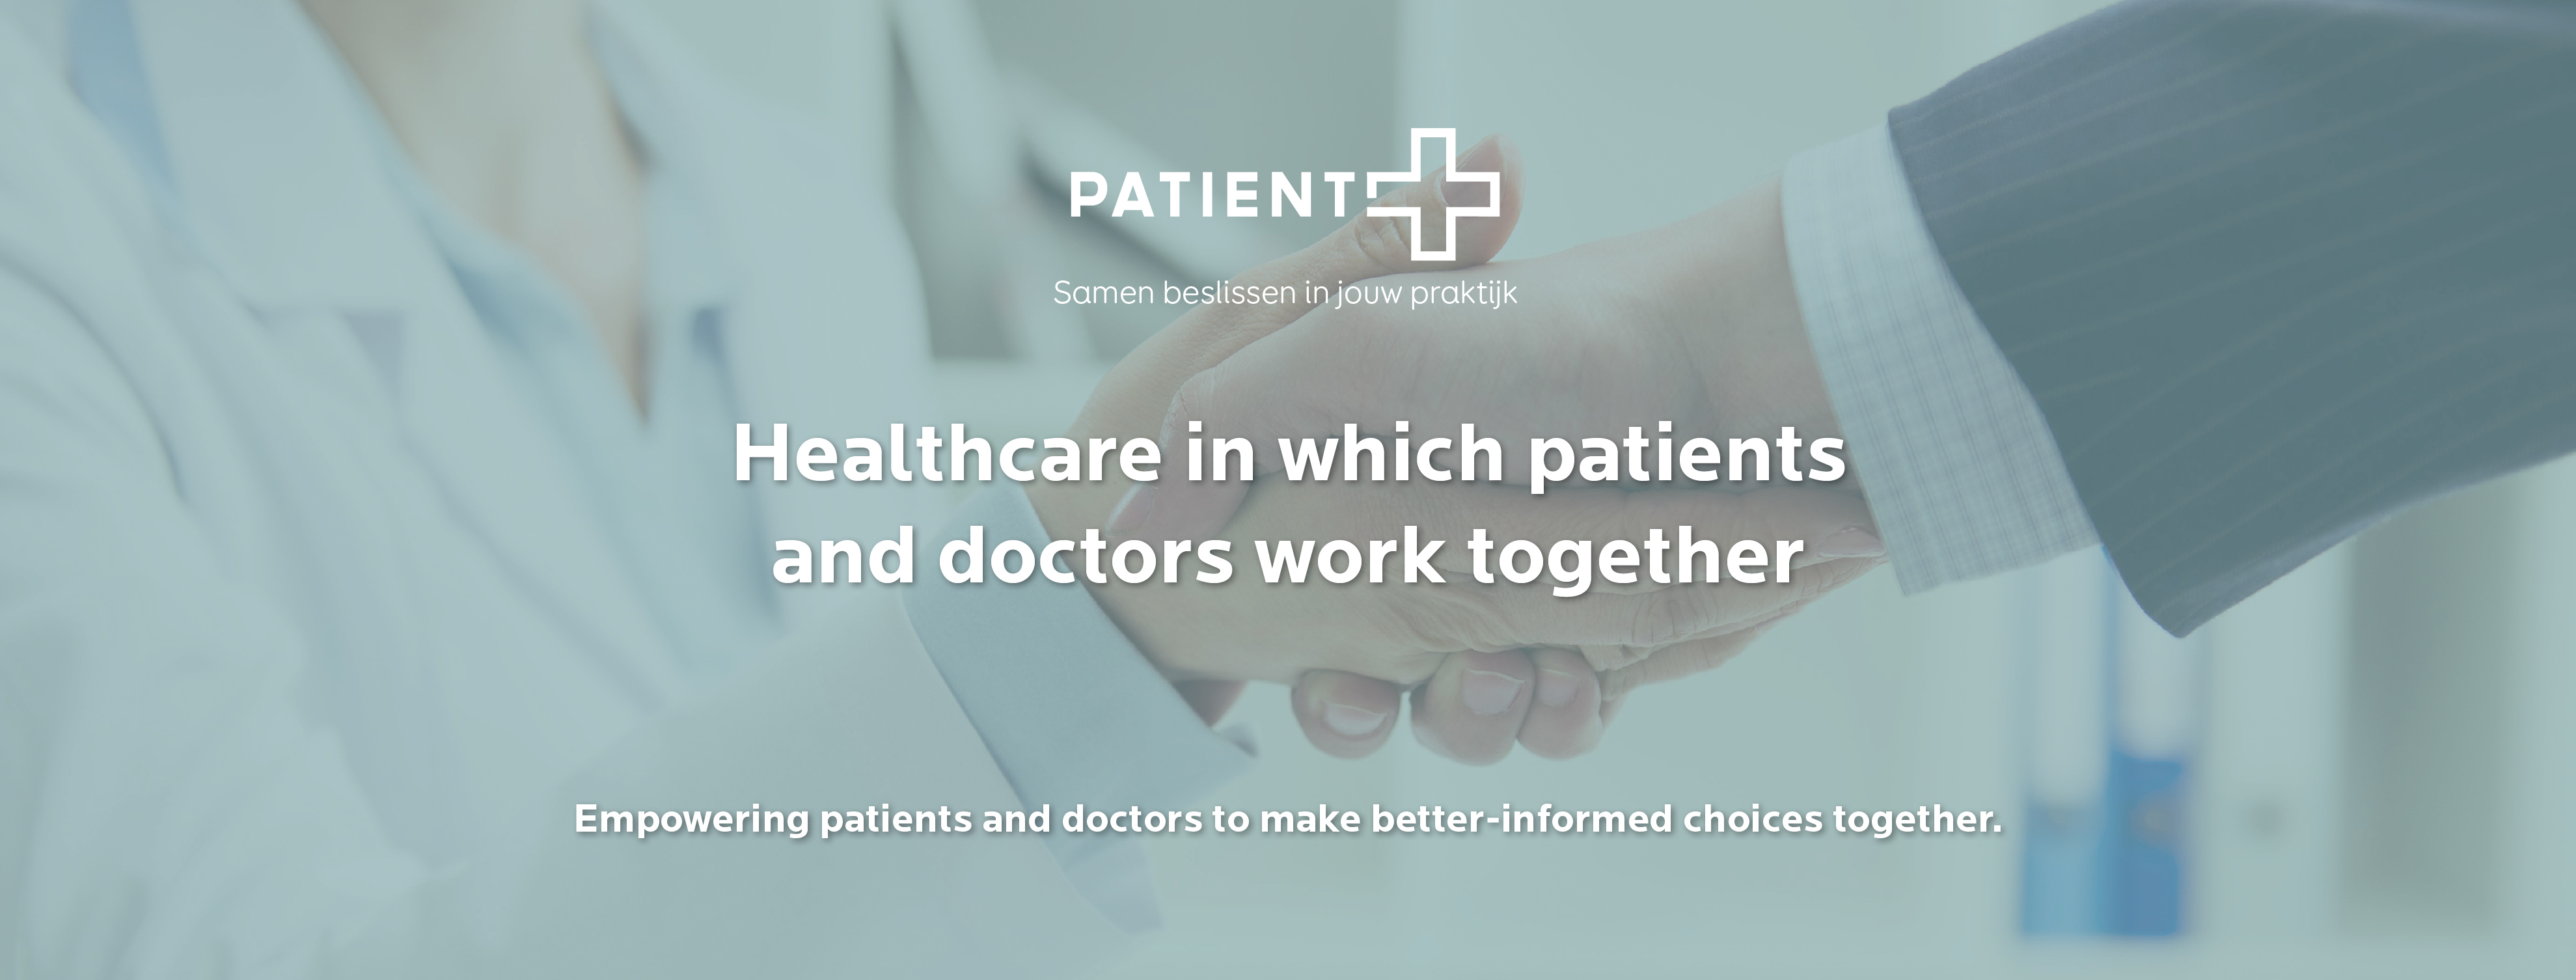 Creating positive impact in the healthcare sector